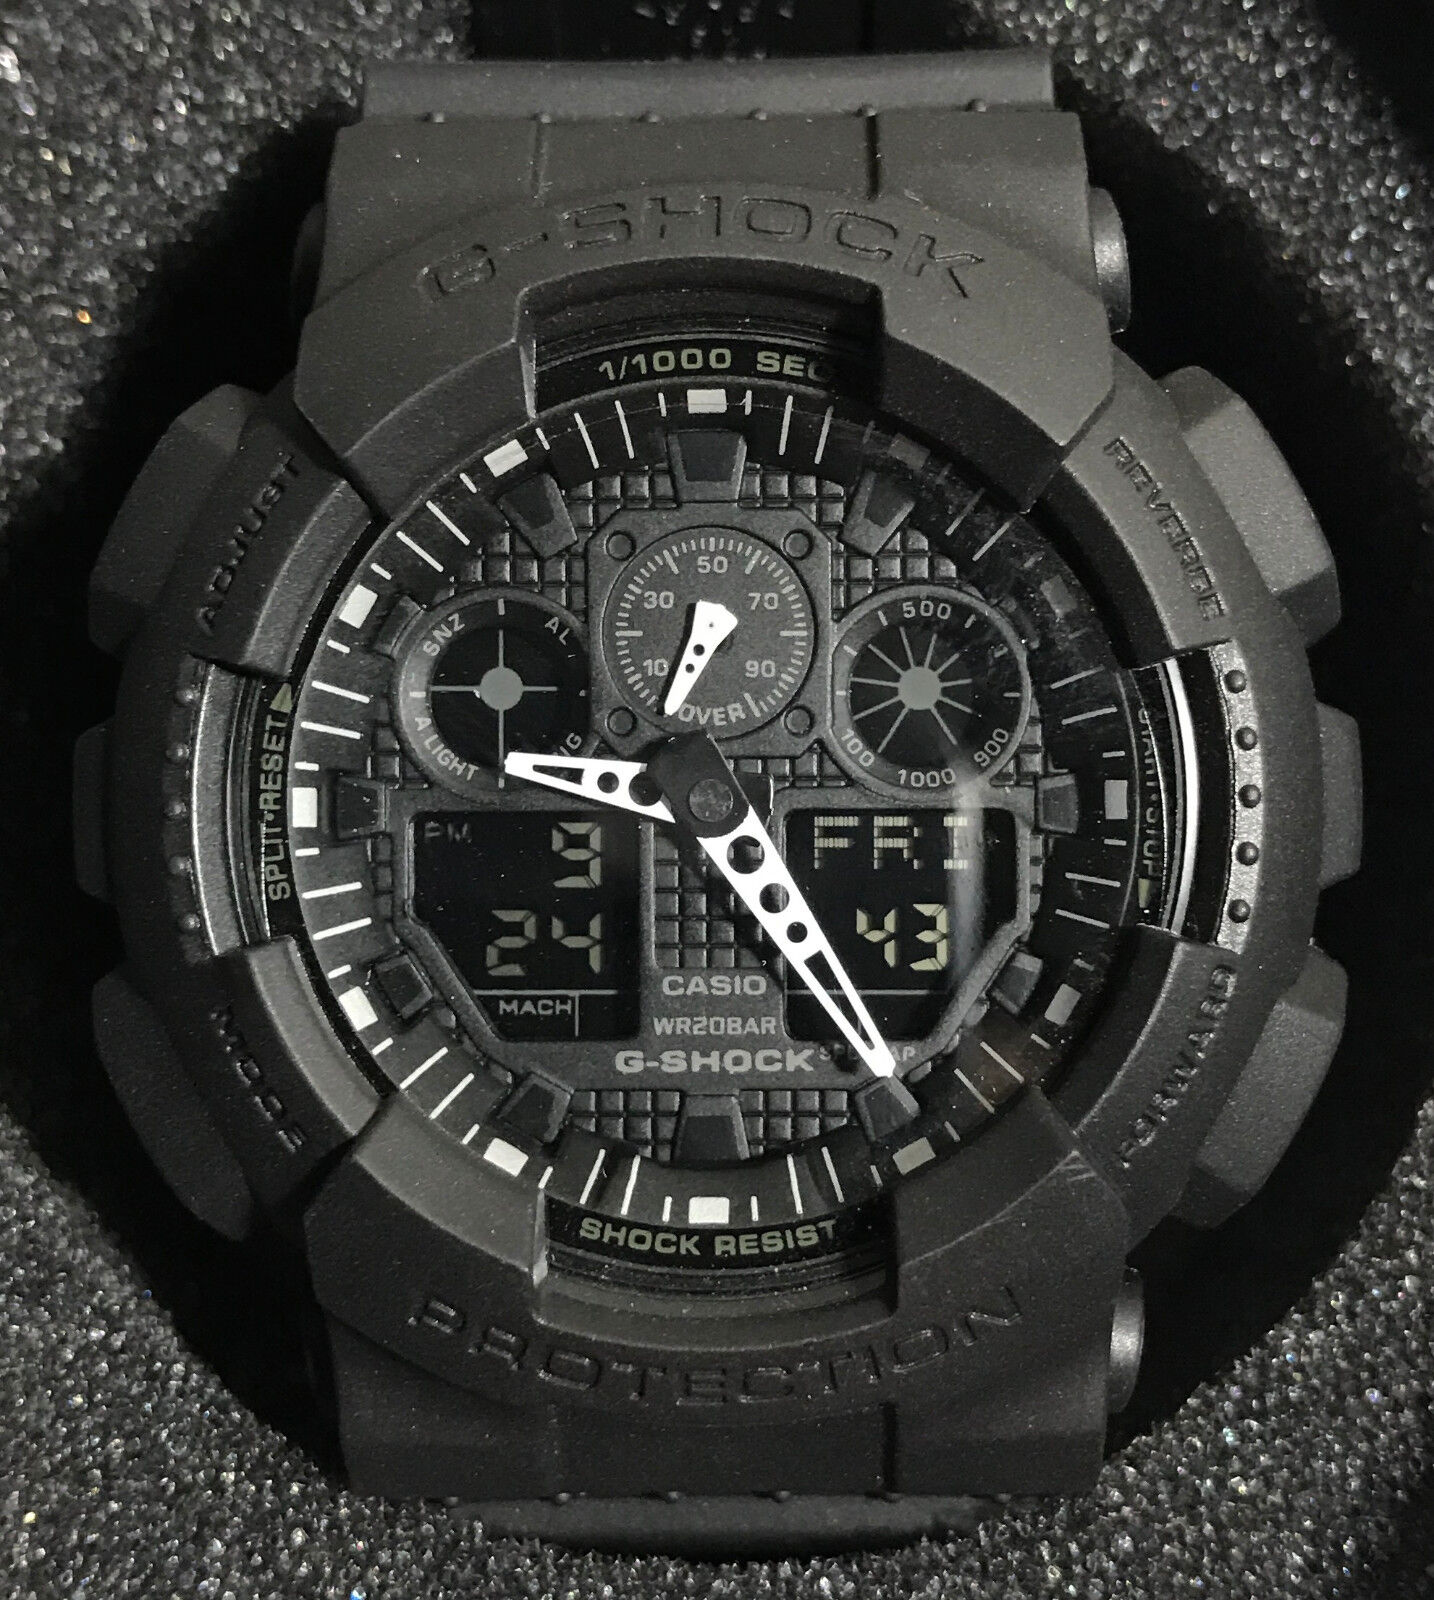 Mens Watches - Casio G-Shock Mens Watch GA100-1A1 Black Sport Watch